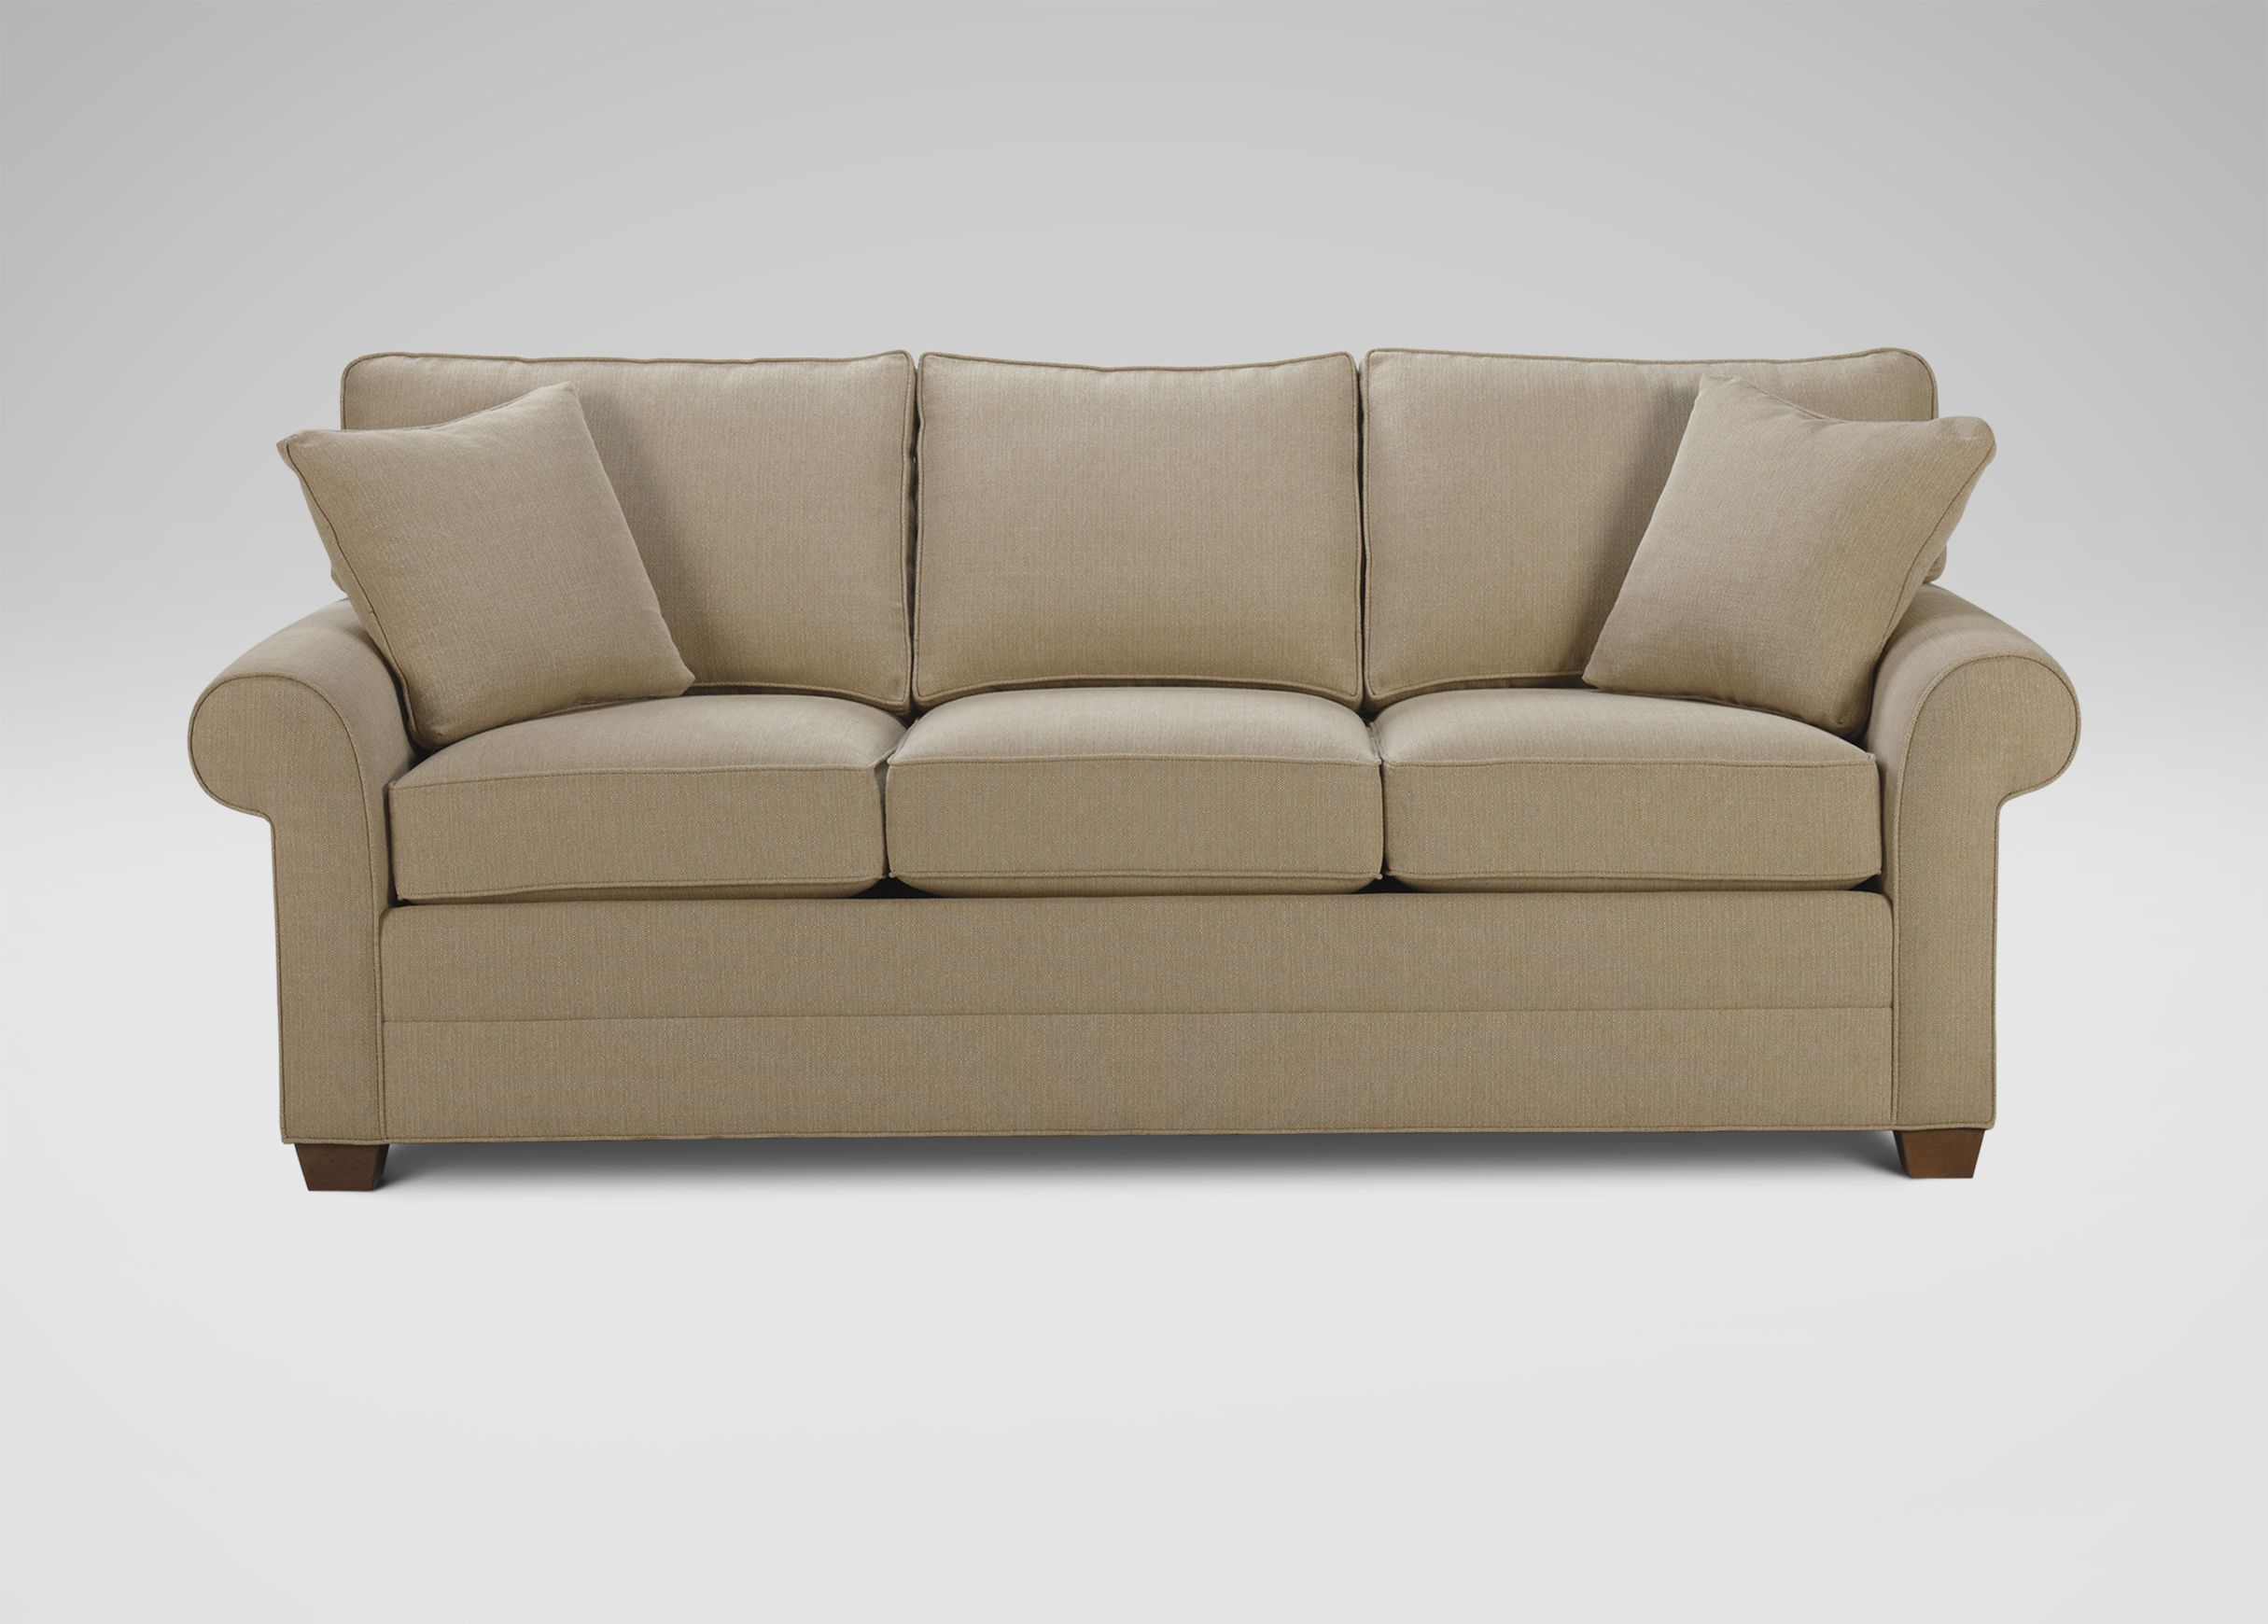 bennett roll arm sofa cayman grain ethan allen furniture rh pinterest es